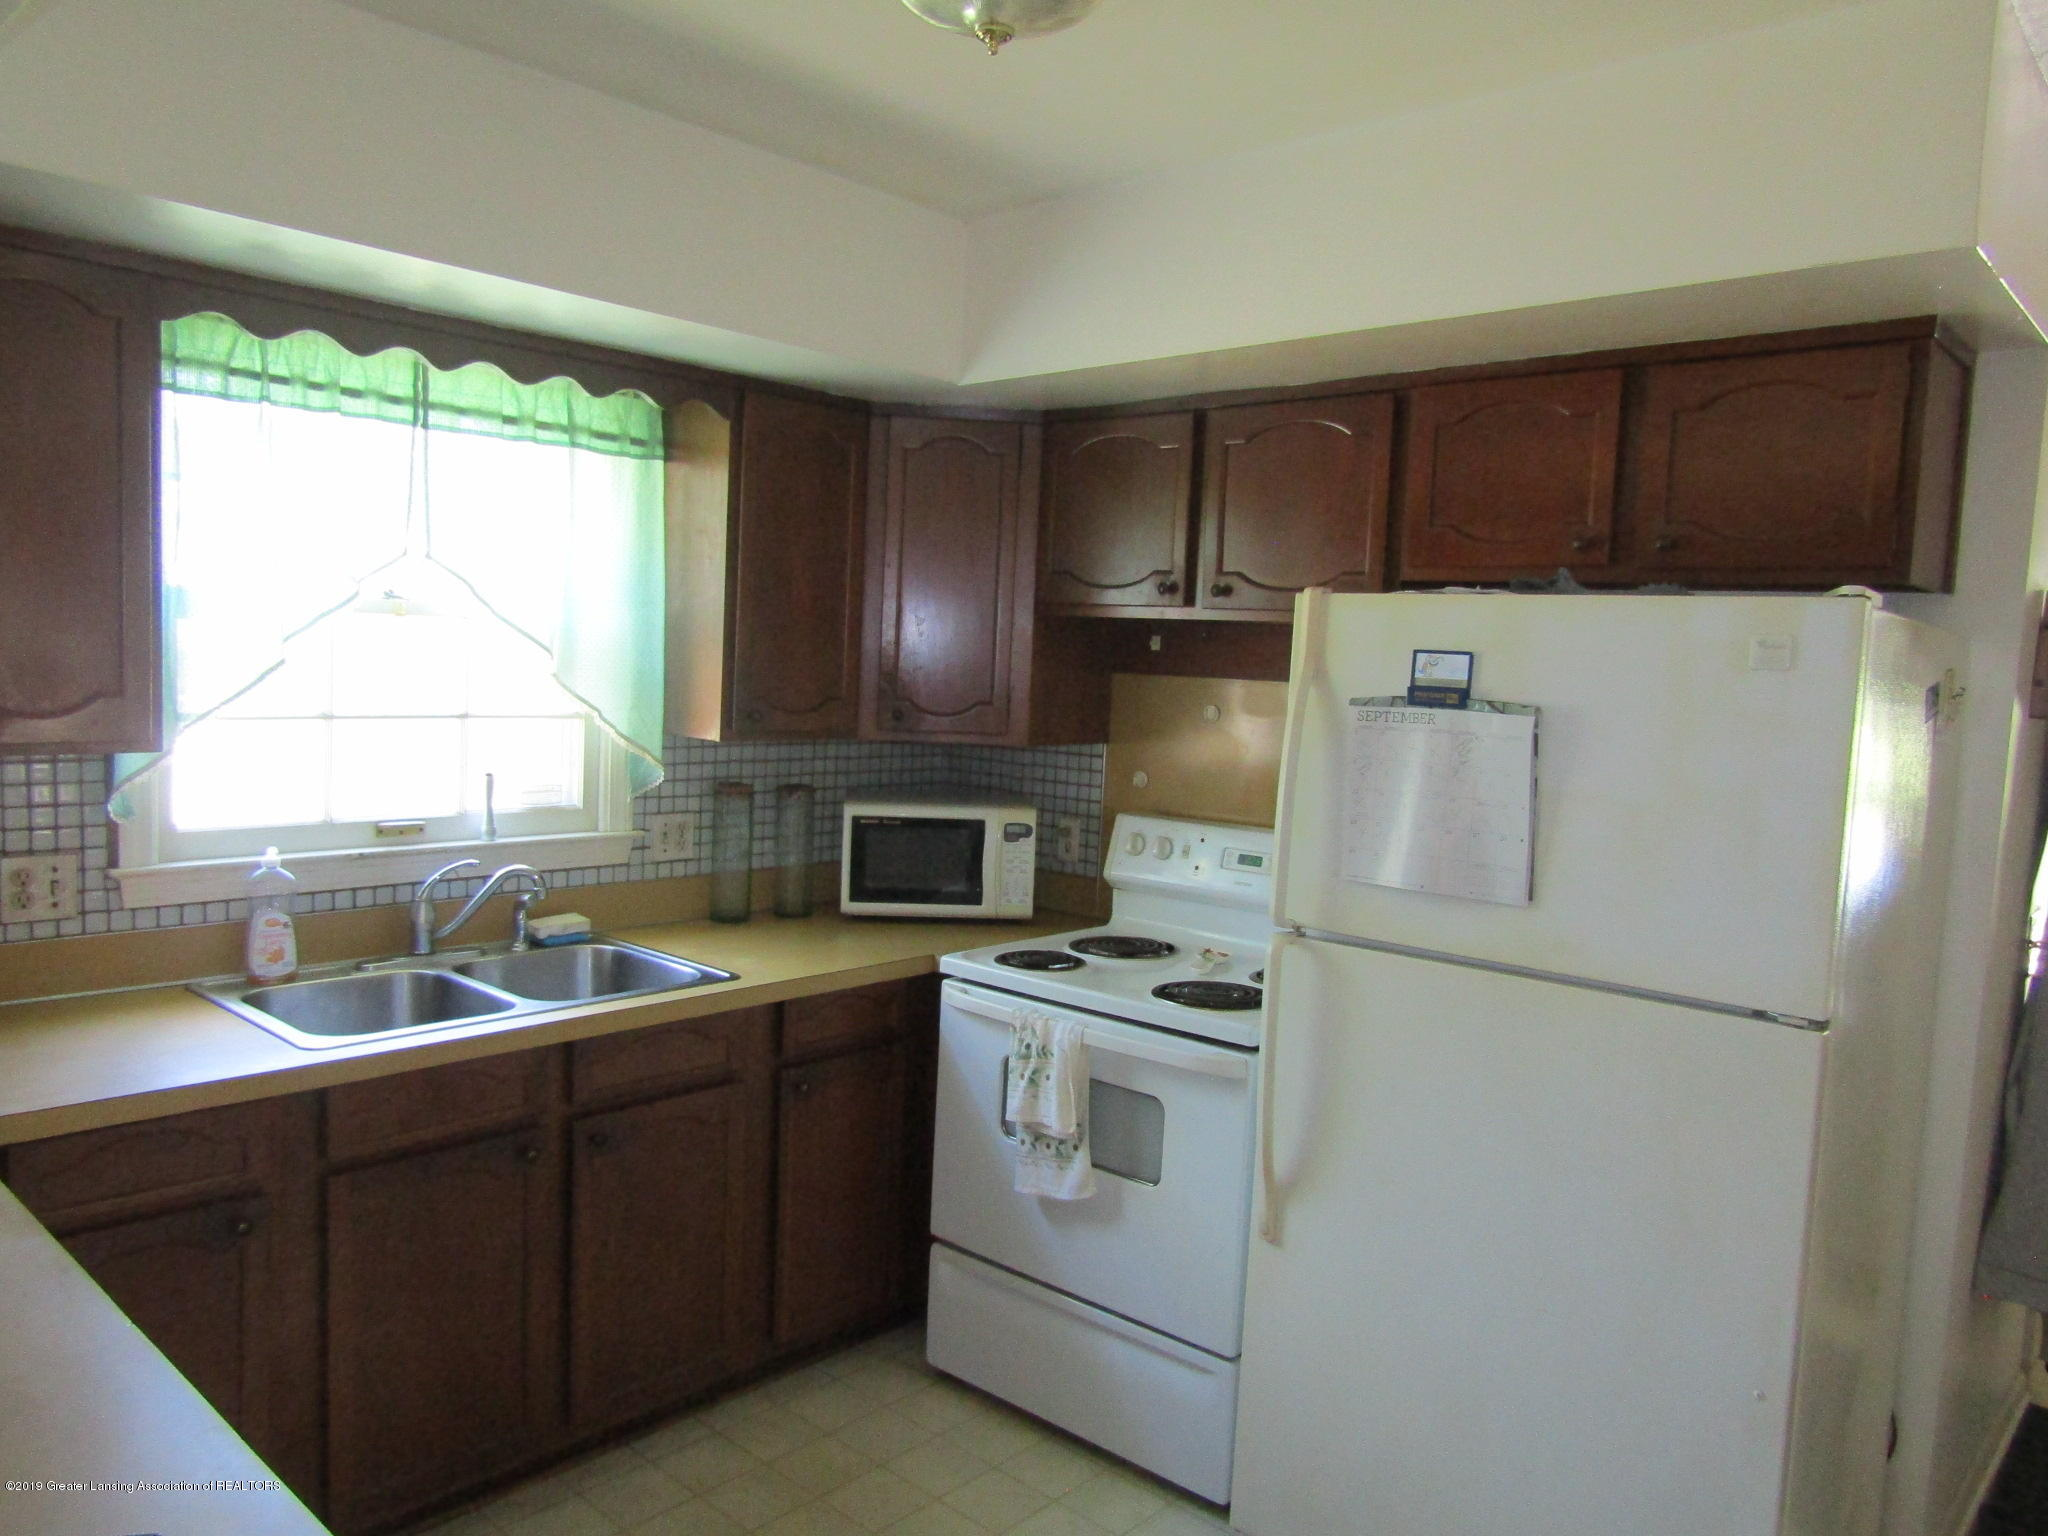 2621 S Waverly Rd - Kitchen - 7